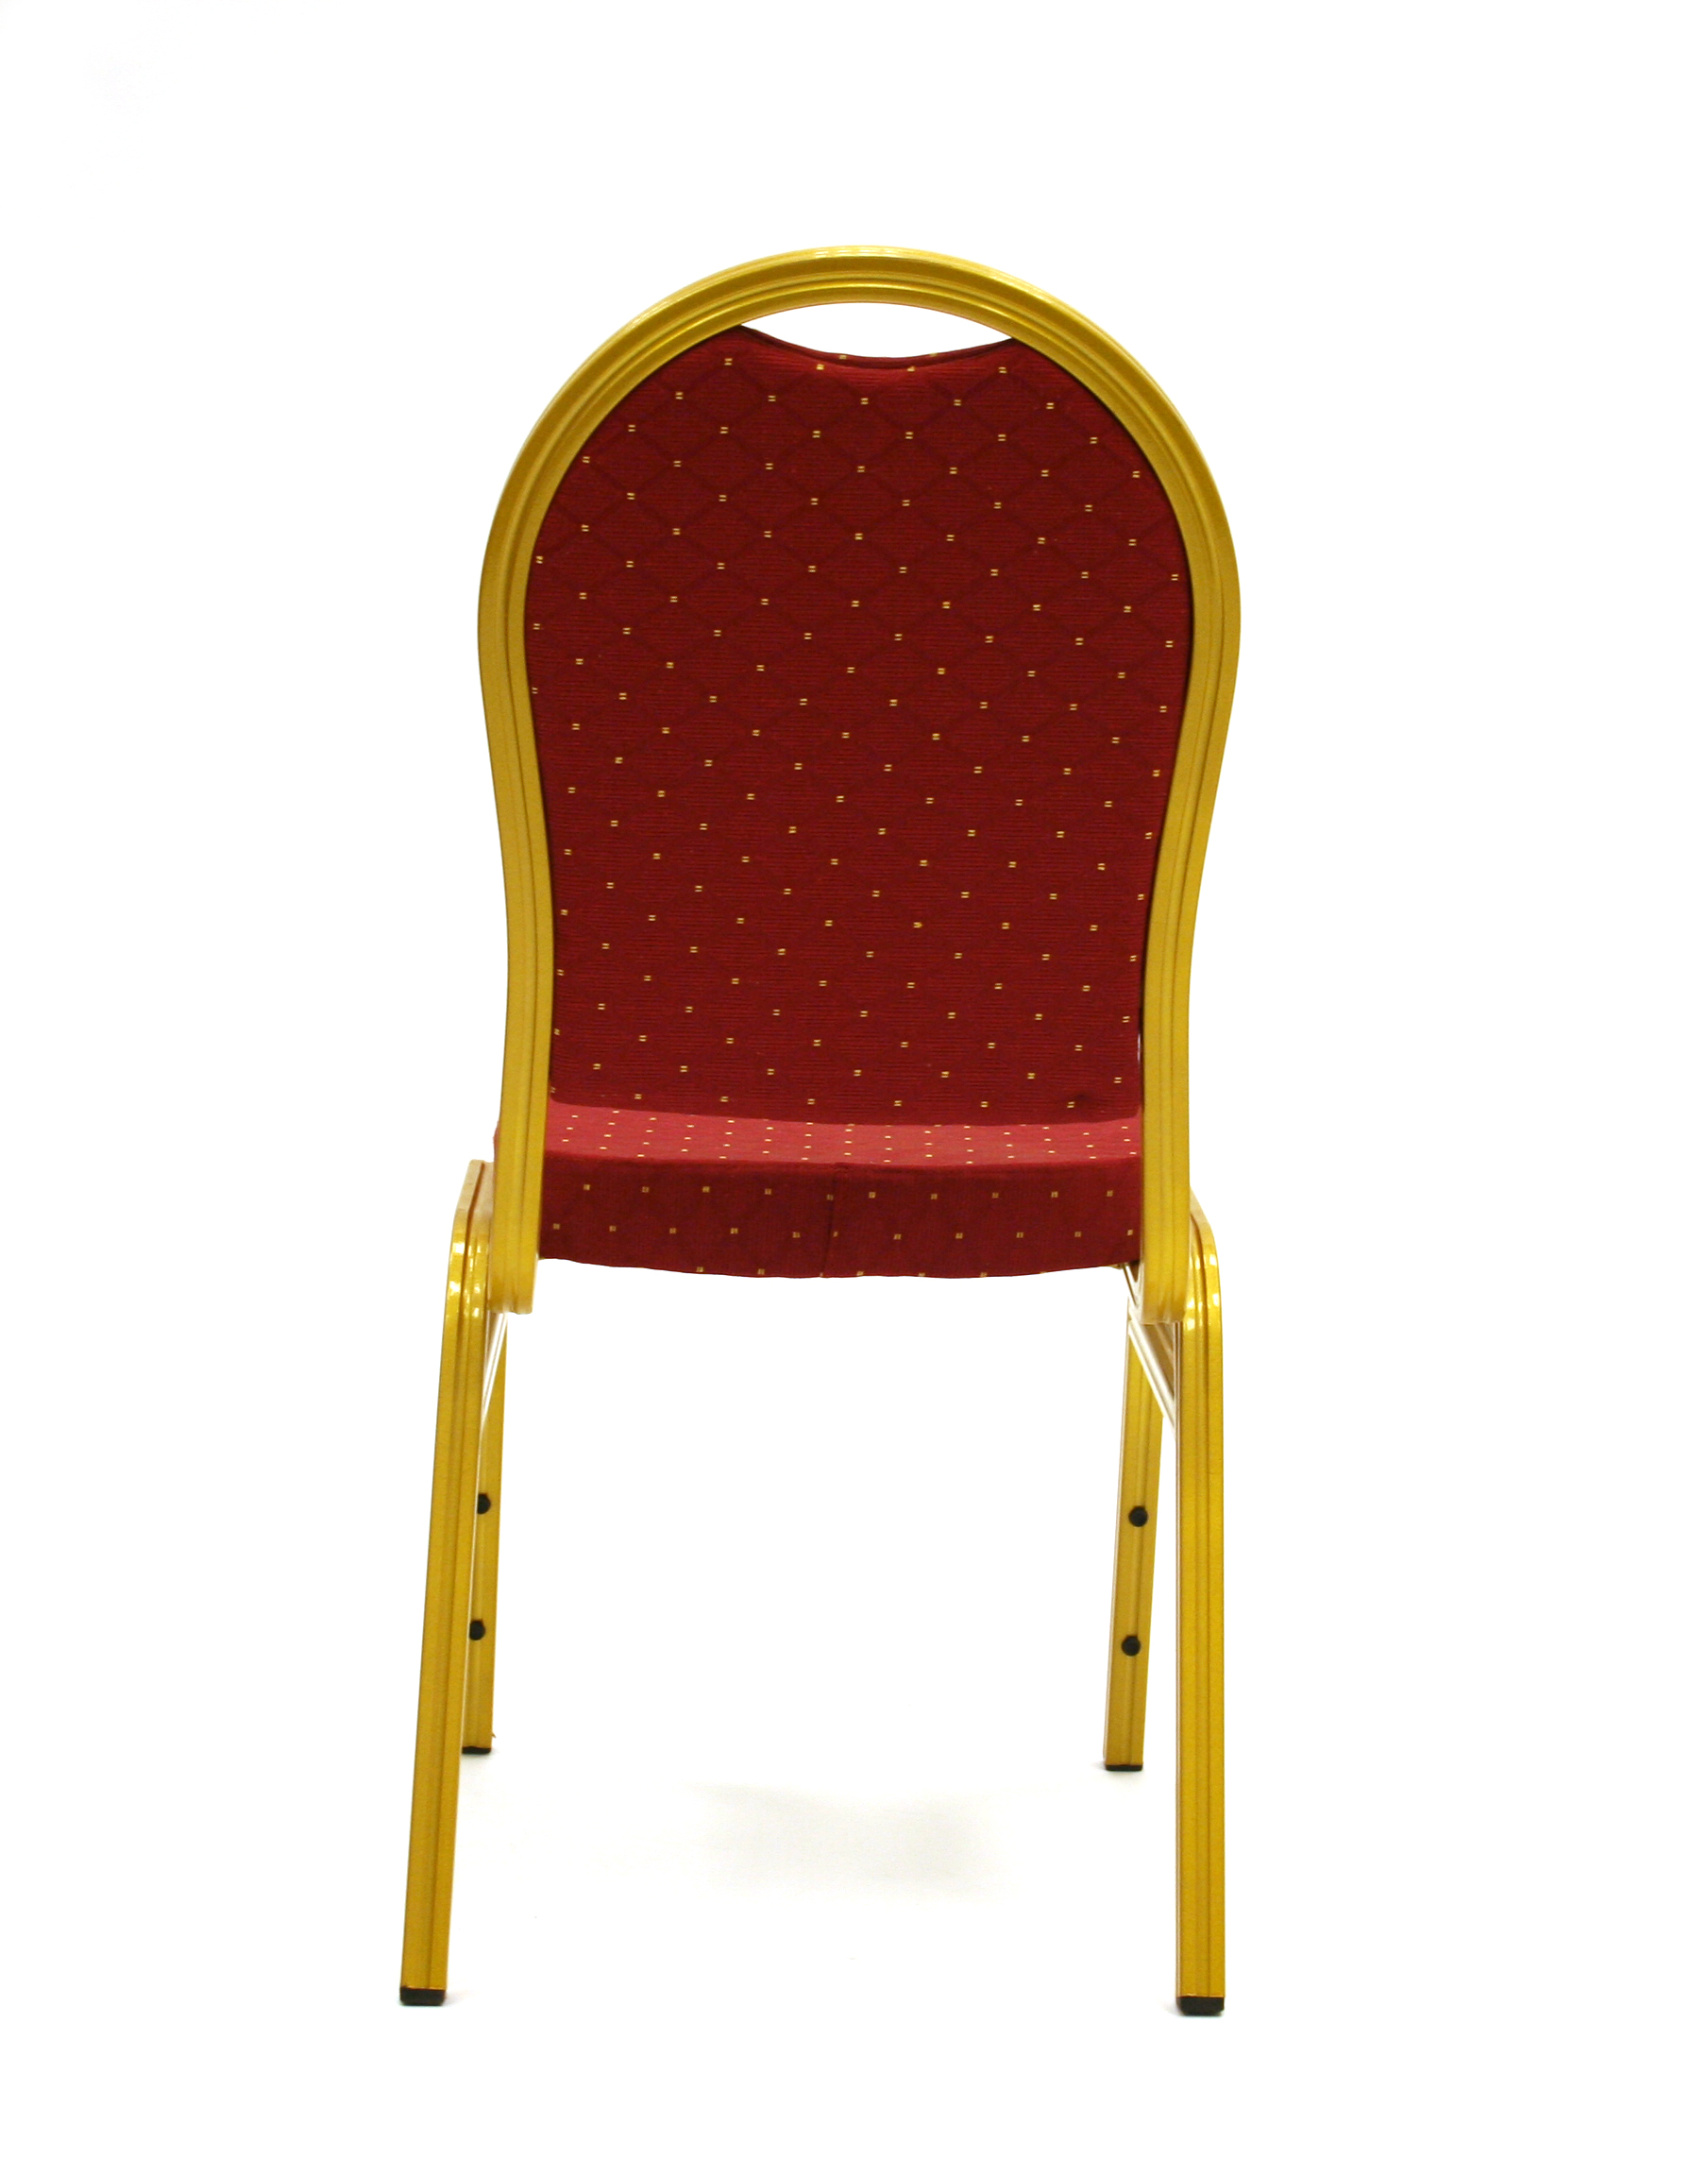 Back view of red and gold banqueting chair - BE Furniture Sales